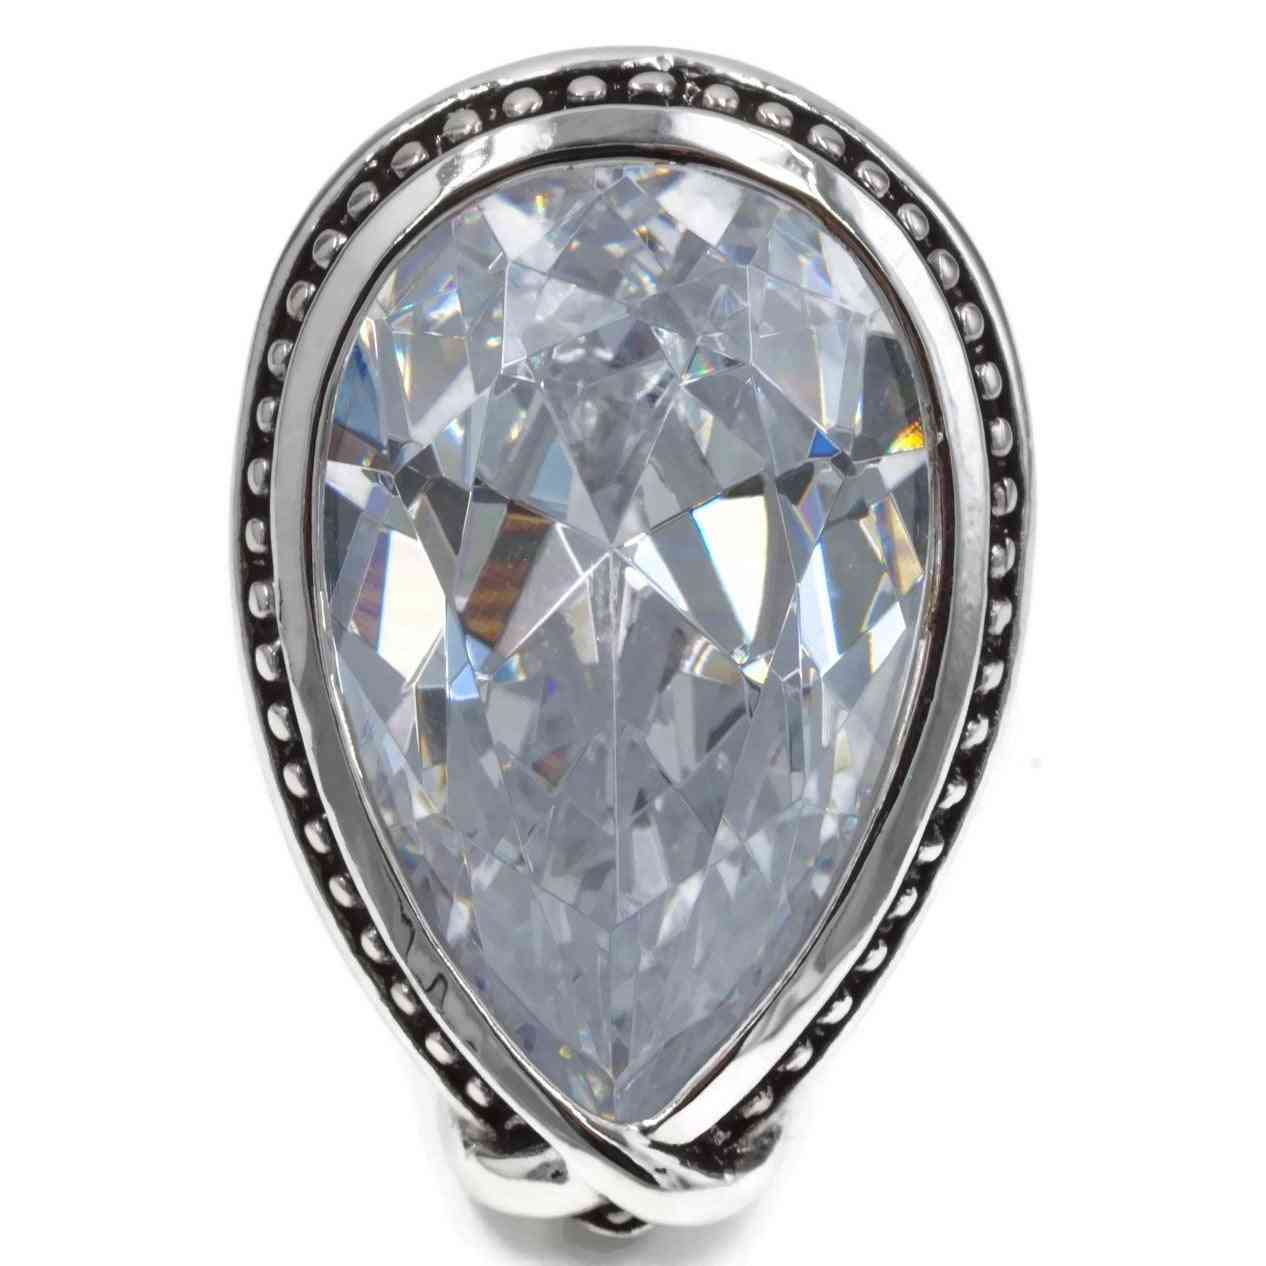 Large Antique Trim Clear Teardrop Cocktail Ring